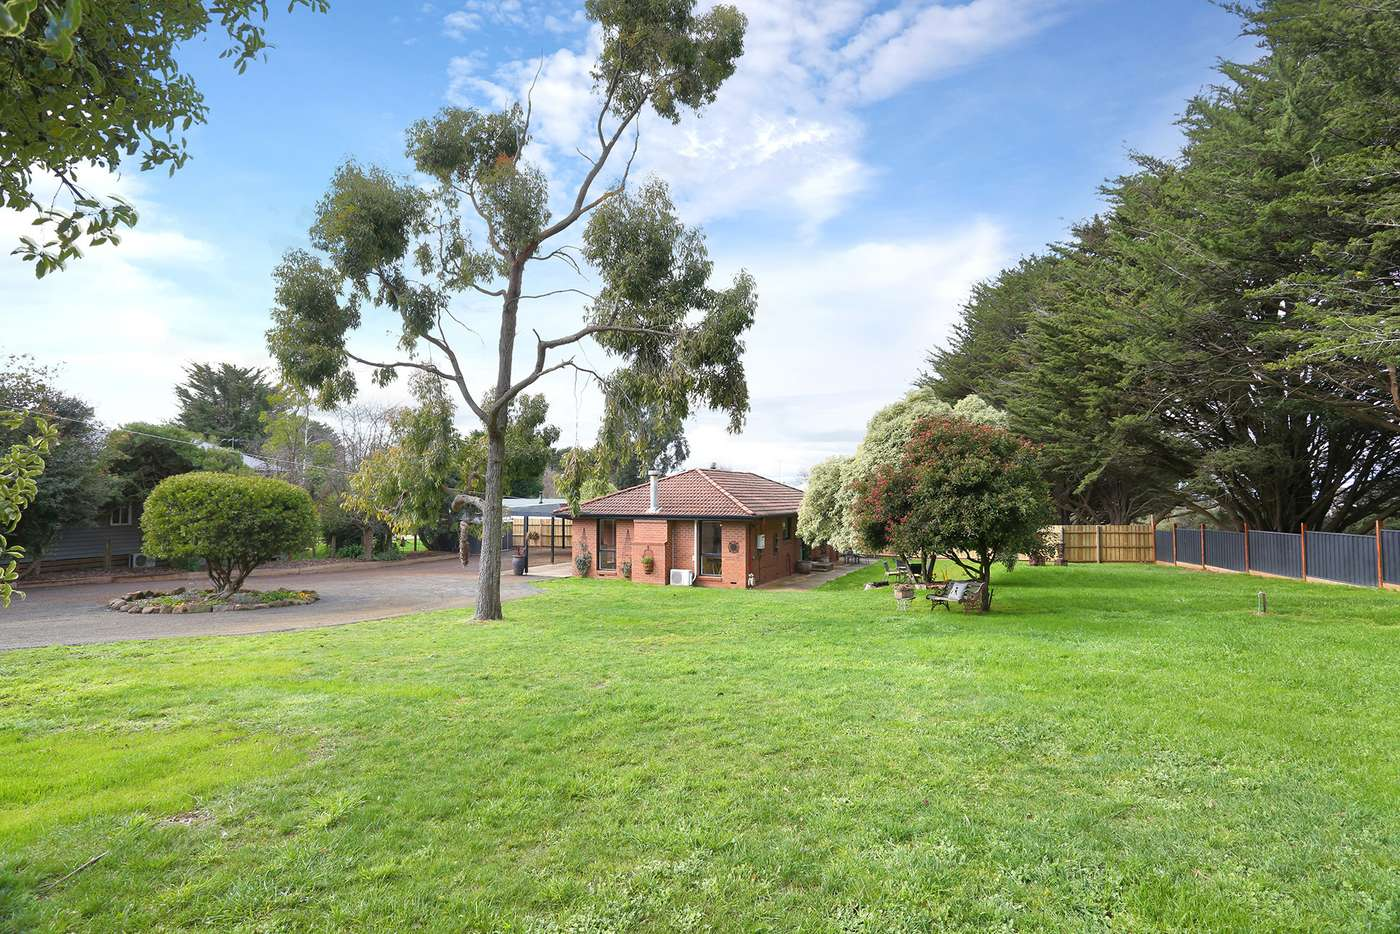 Main view of Homely house listing, 4 Couzens Lane, Romsey VIC 3434